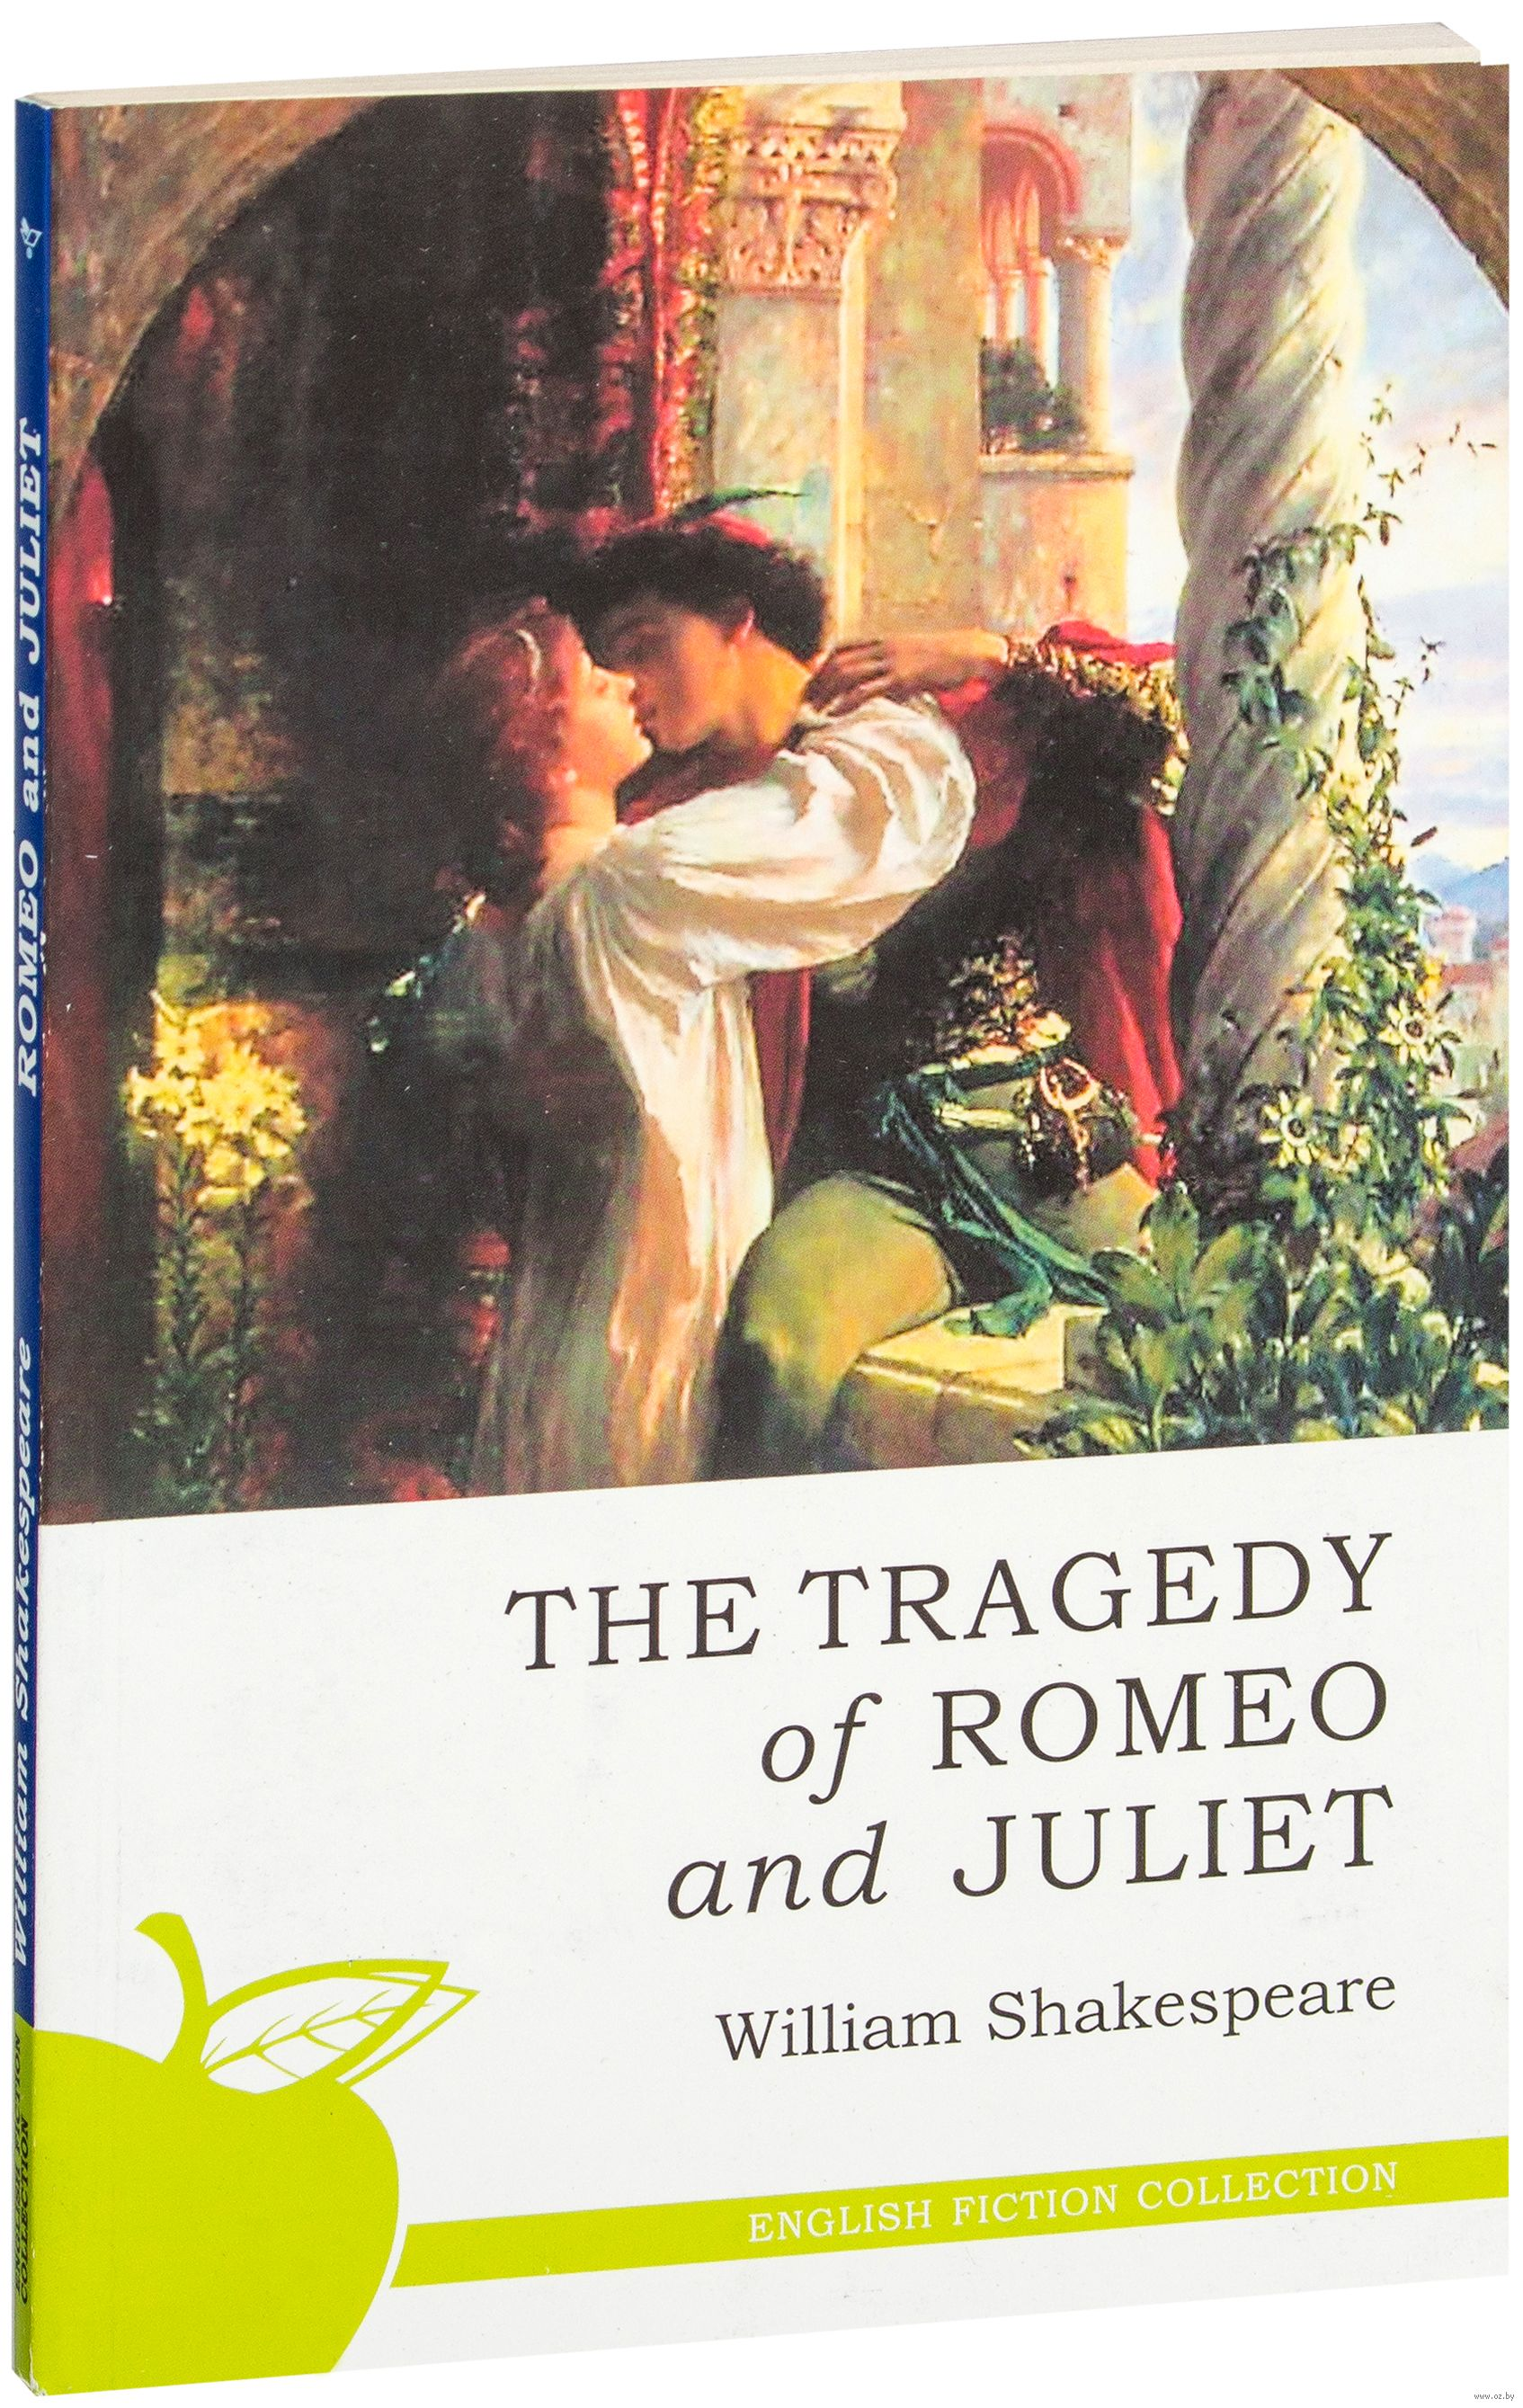 the love aspect in romeo and juliet a play by william shakespeare Romeo and juliet william shakespeare released 1595 one of shakespeare's most iconic plays, romeo and juliet is the tale of young love gone horribly wrong, as a combination of the lovers' warring families, outside events and their own rashness conspire to wreak tragedy on juliet and her.